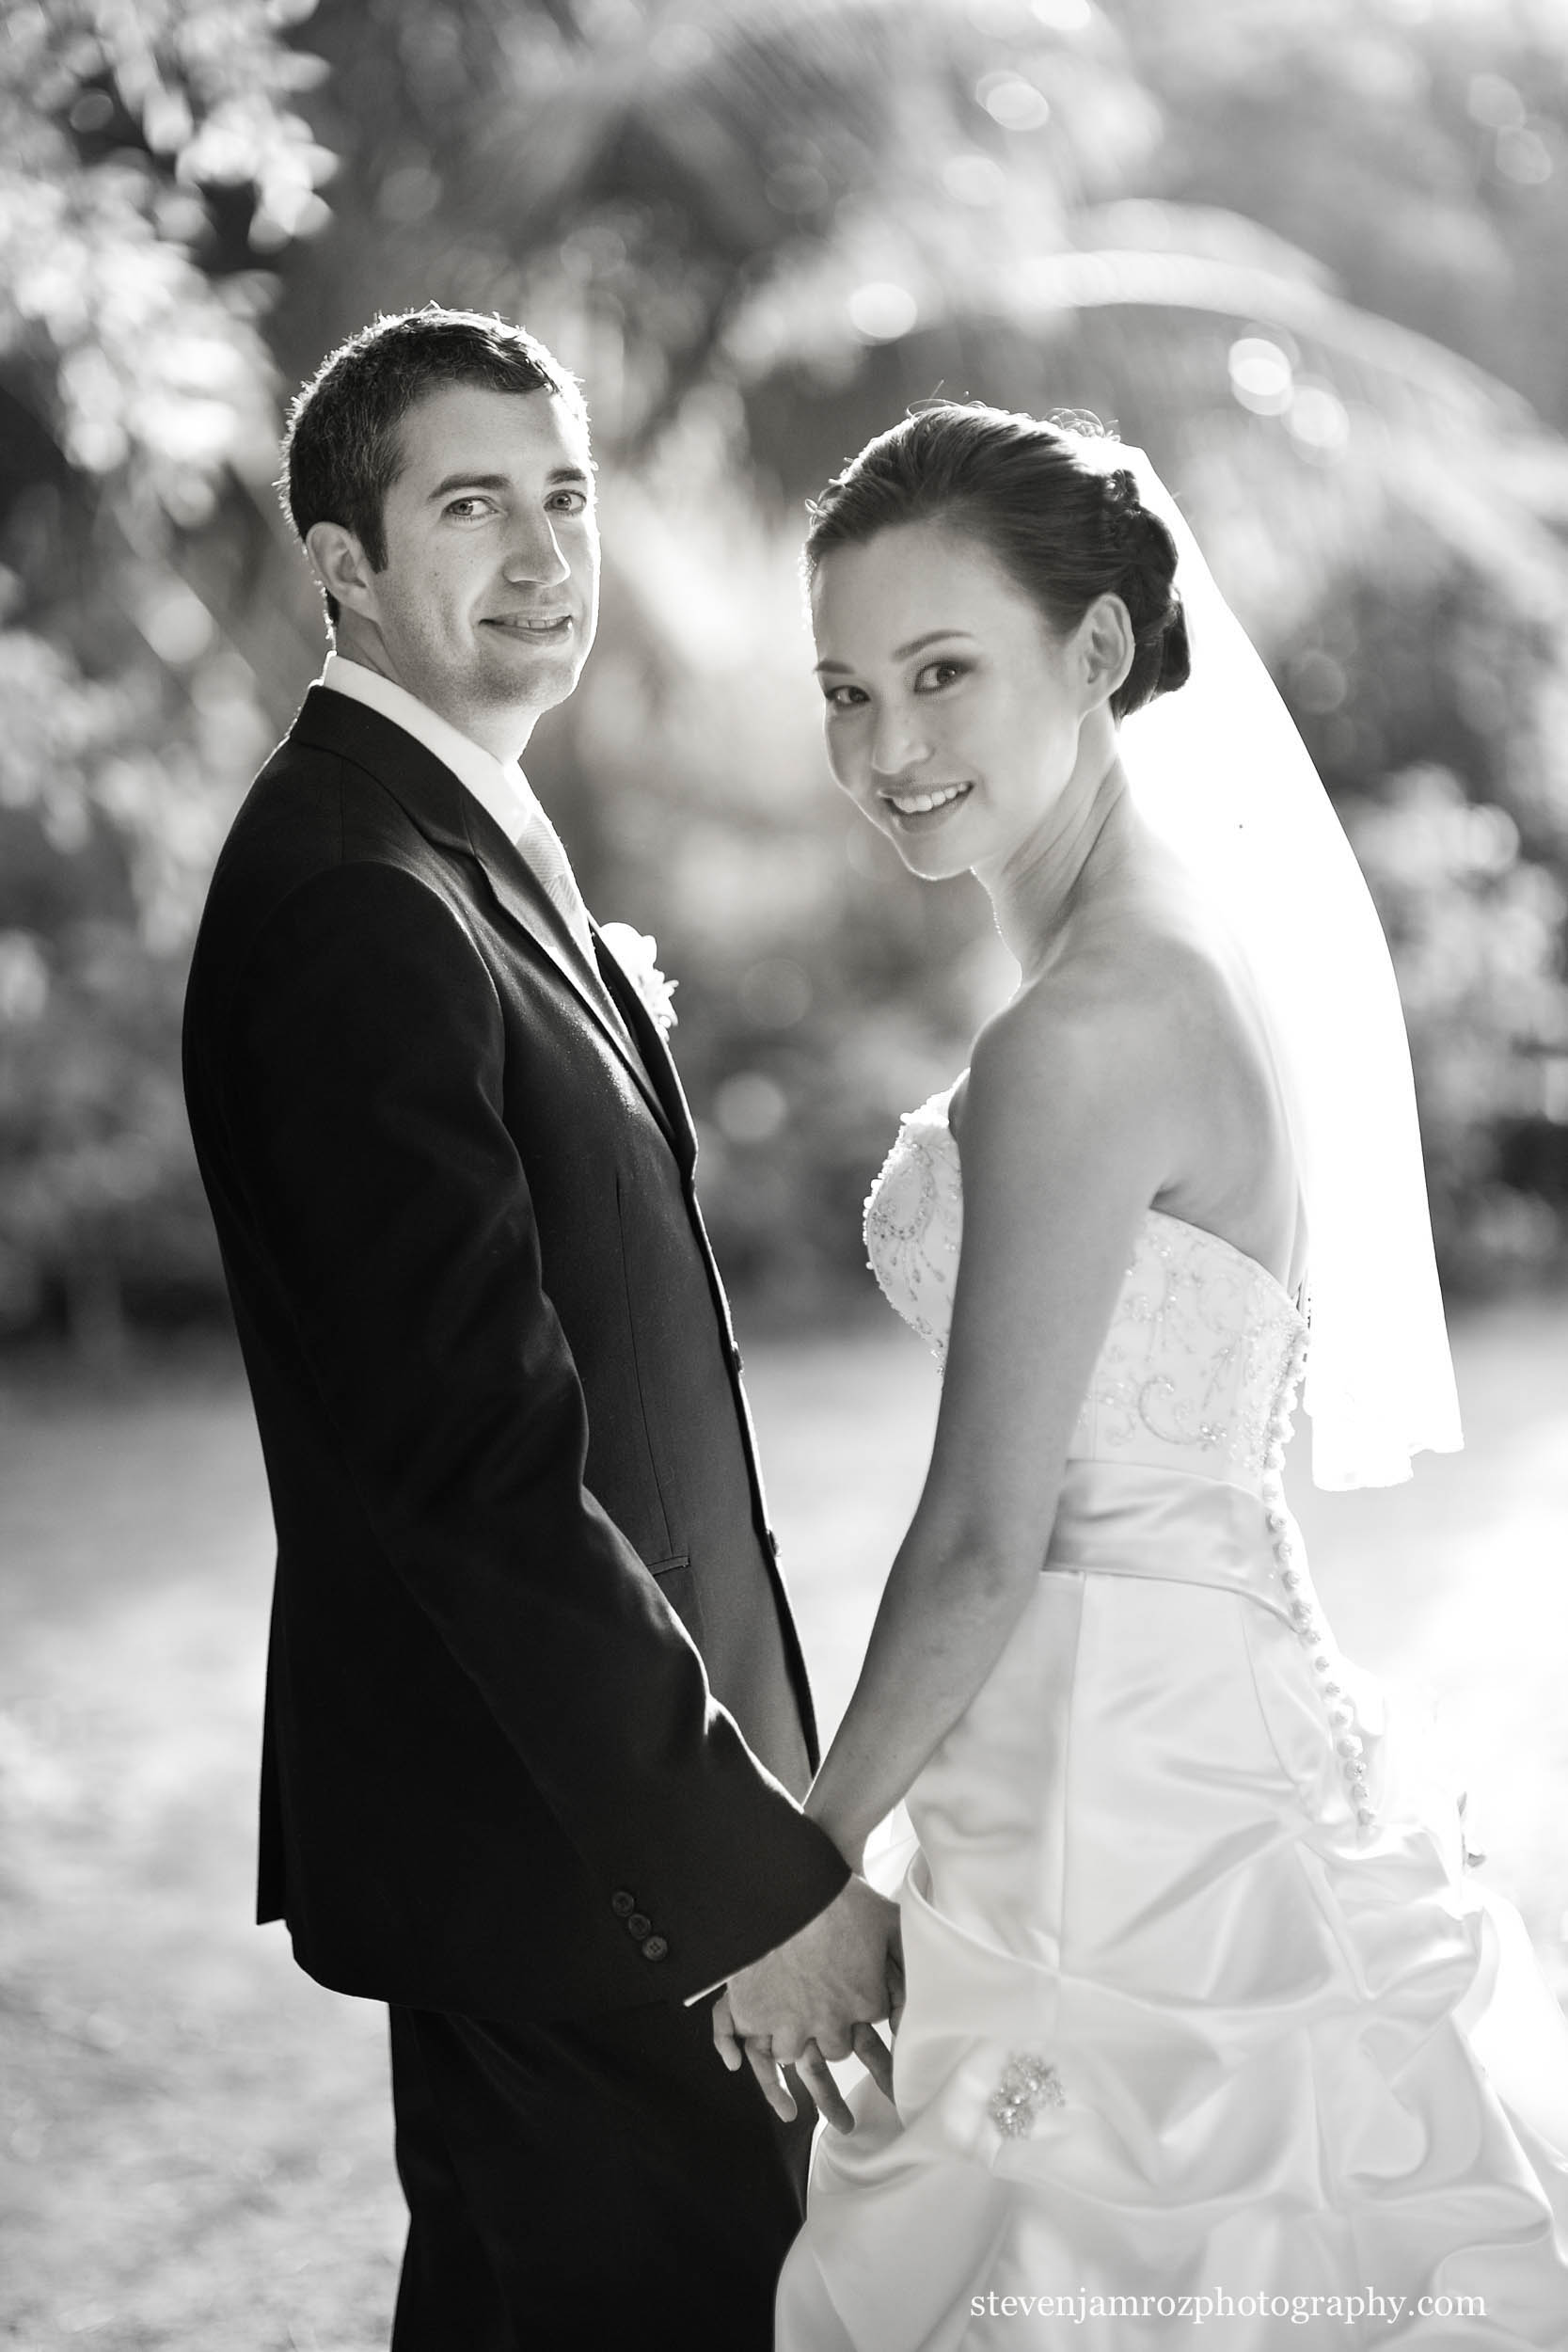 holding-hands-together-bride-groom-wedding-steven-jamroz-0687.jpg